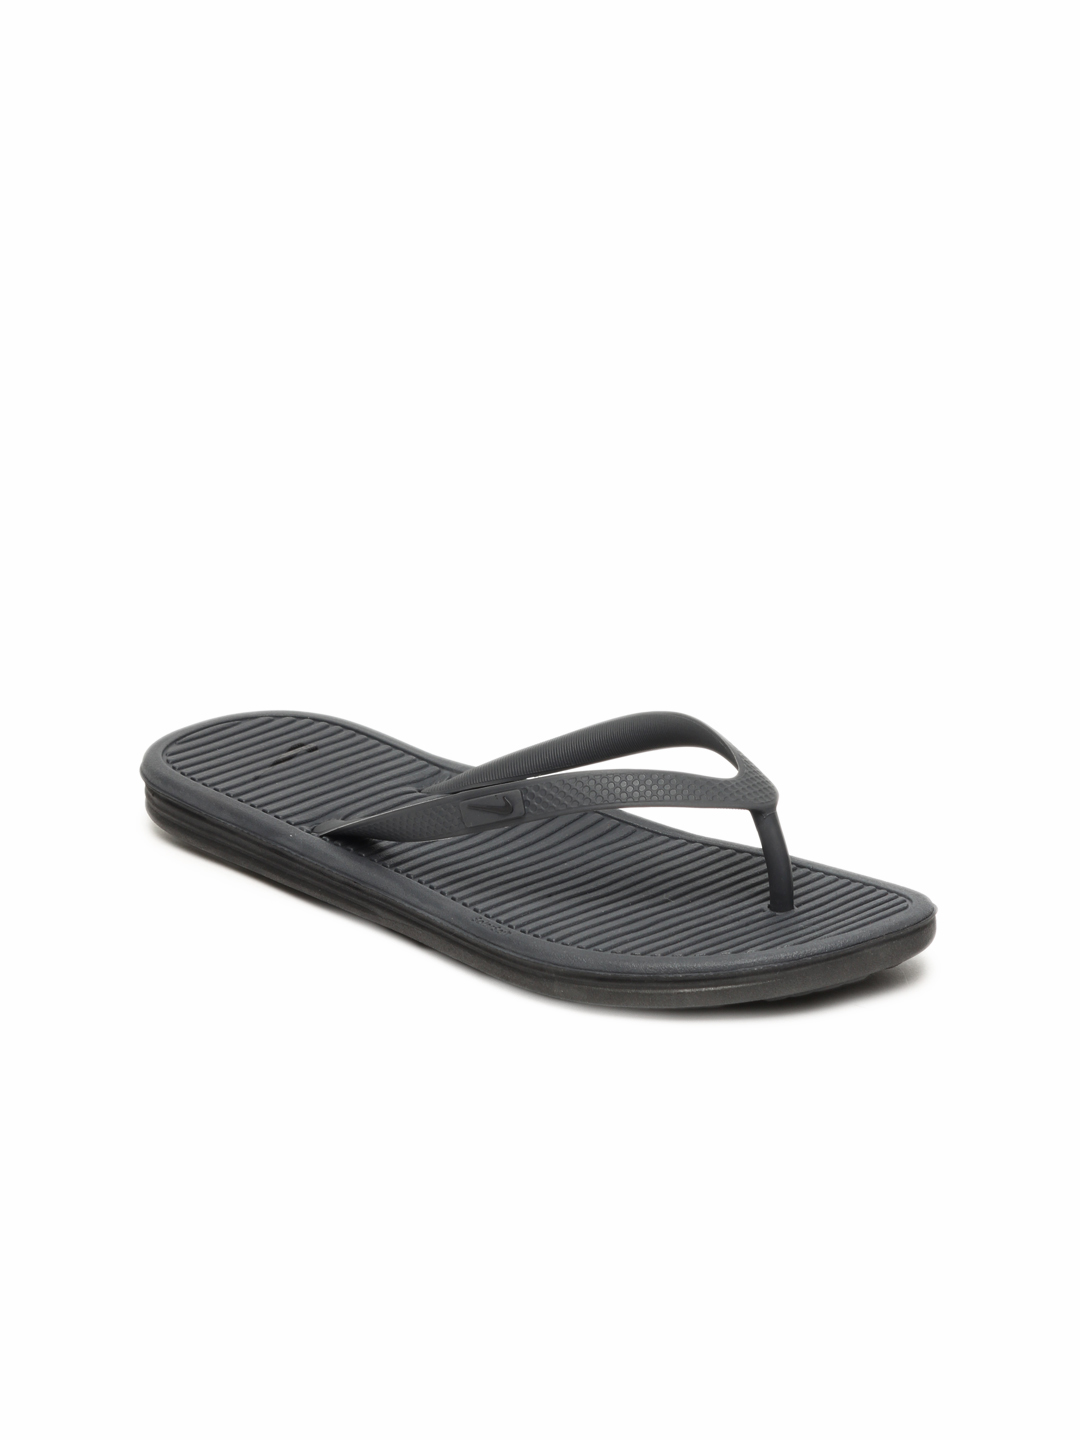 Nike Women Black Solarsoft Thong II Flip Flops